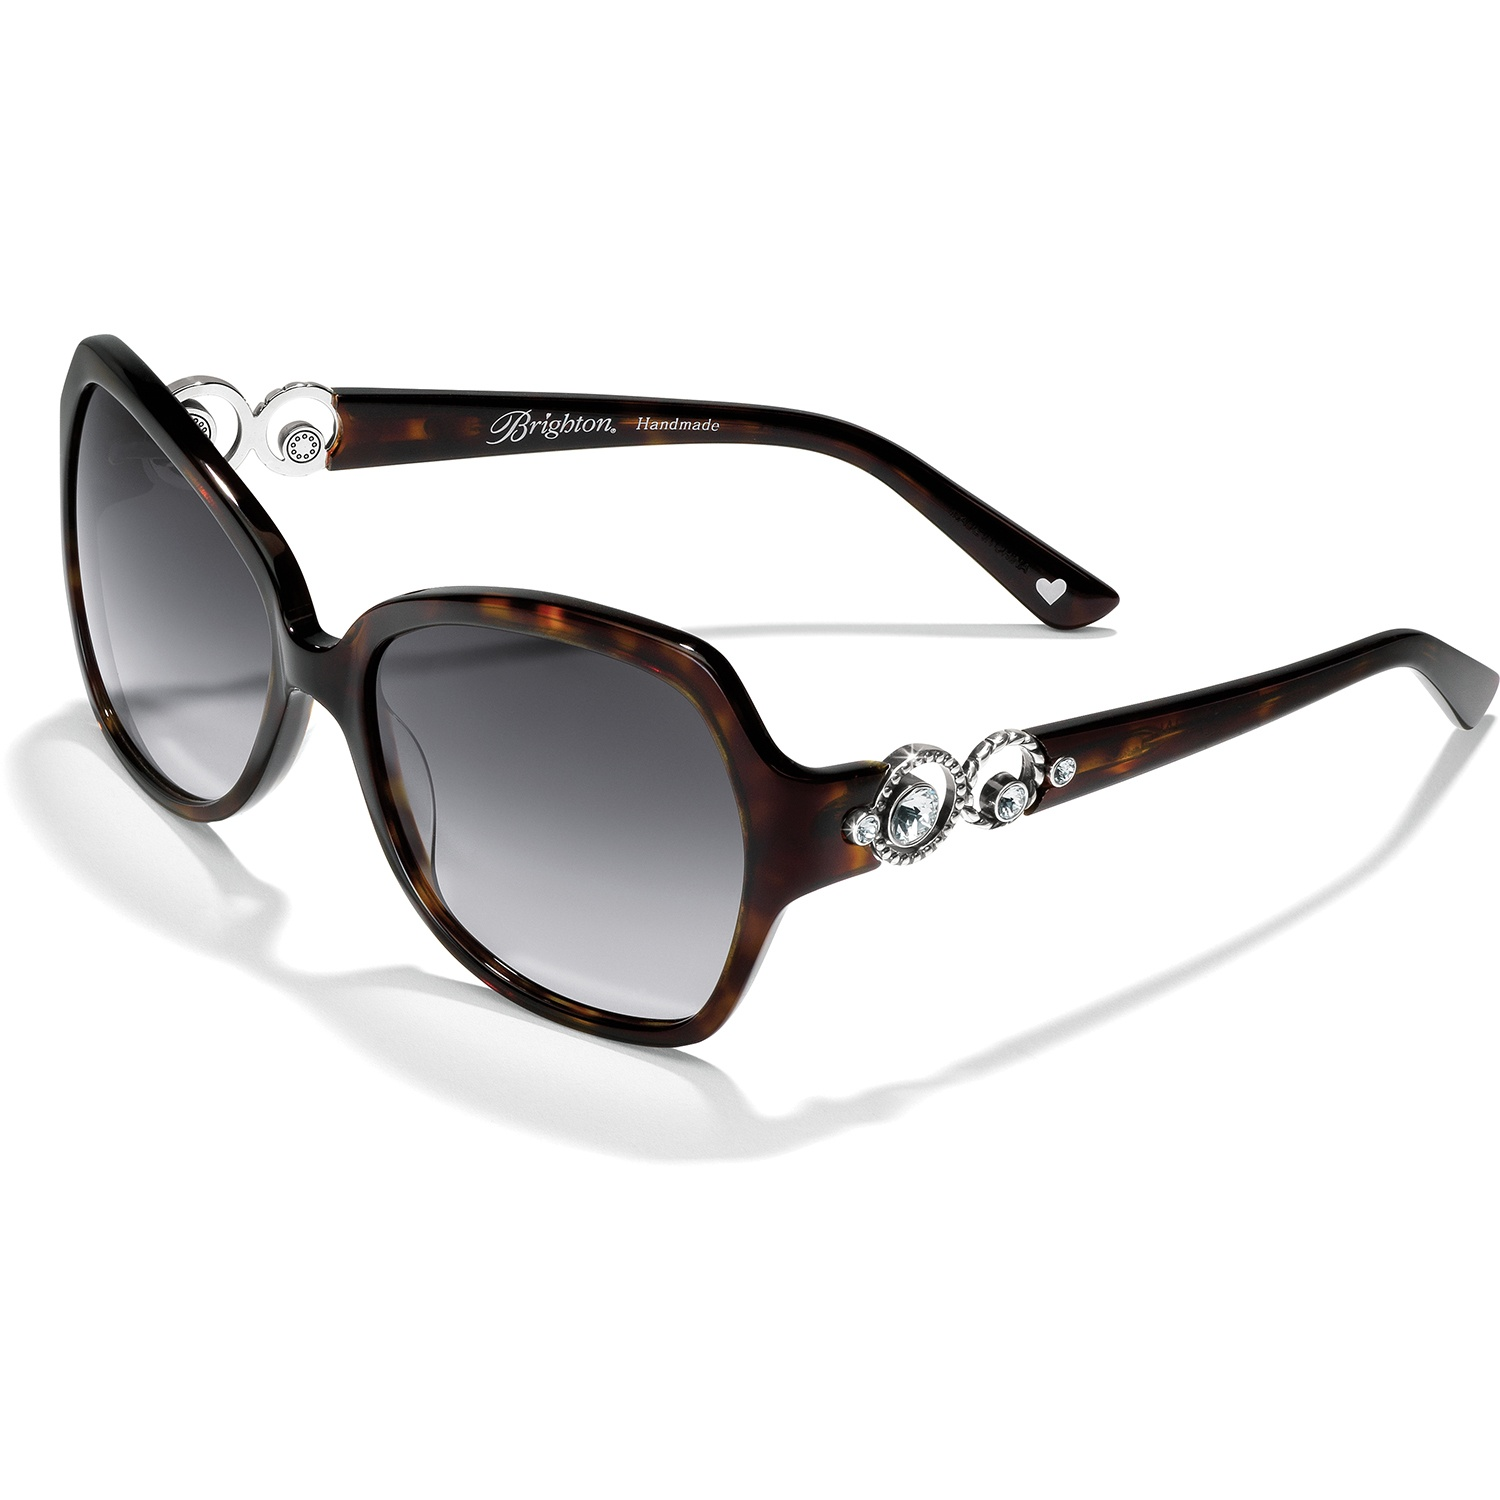 a81d9a617c0a Crystal Halo Sunglasses alternate view 1